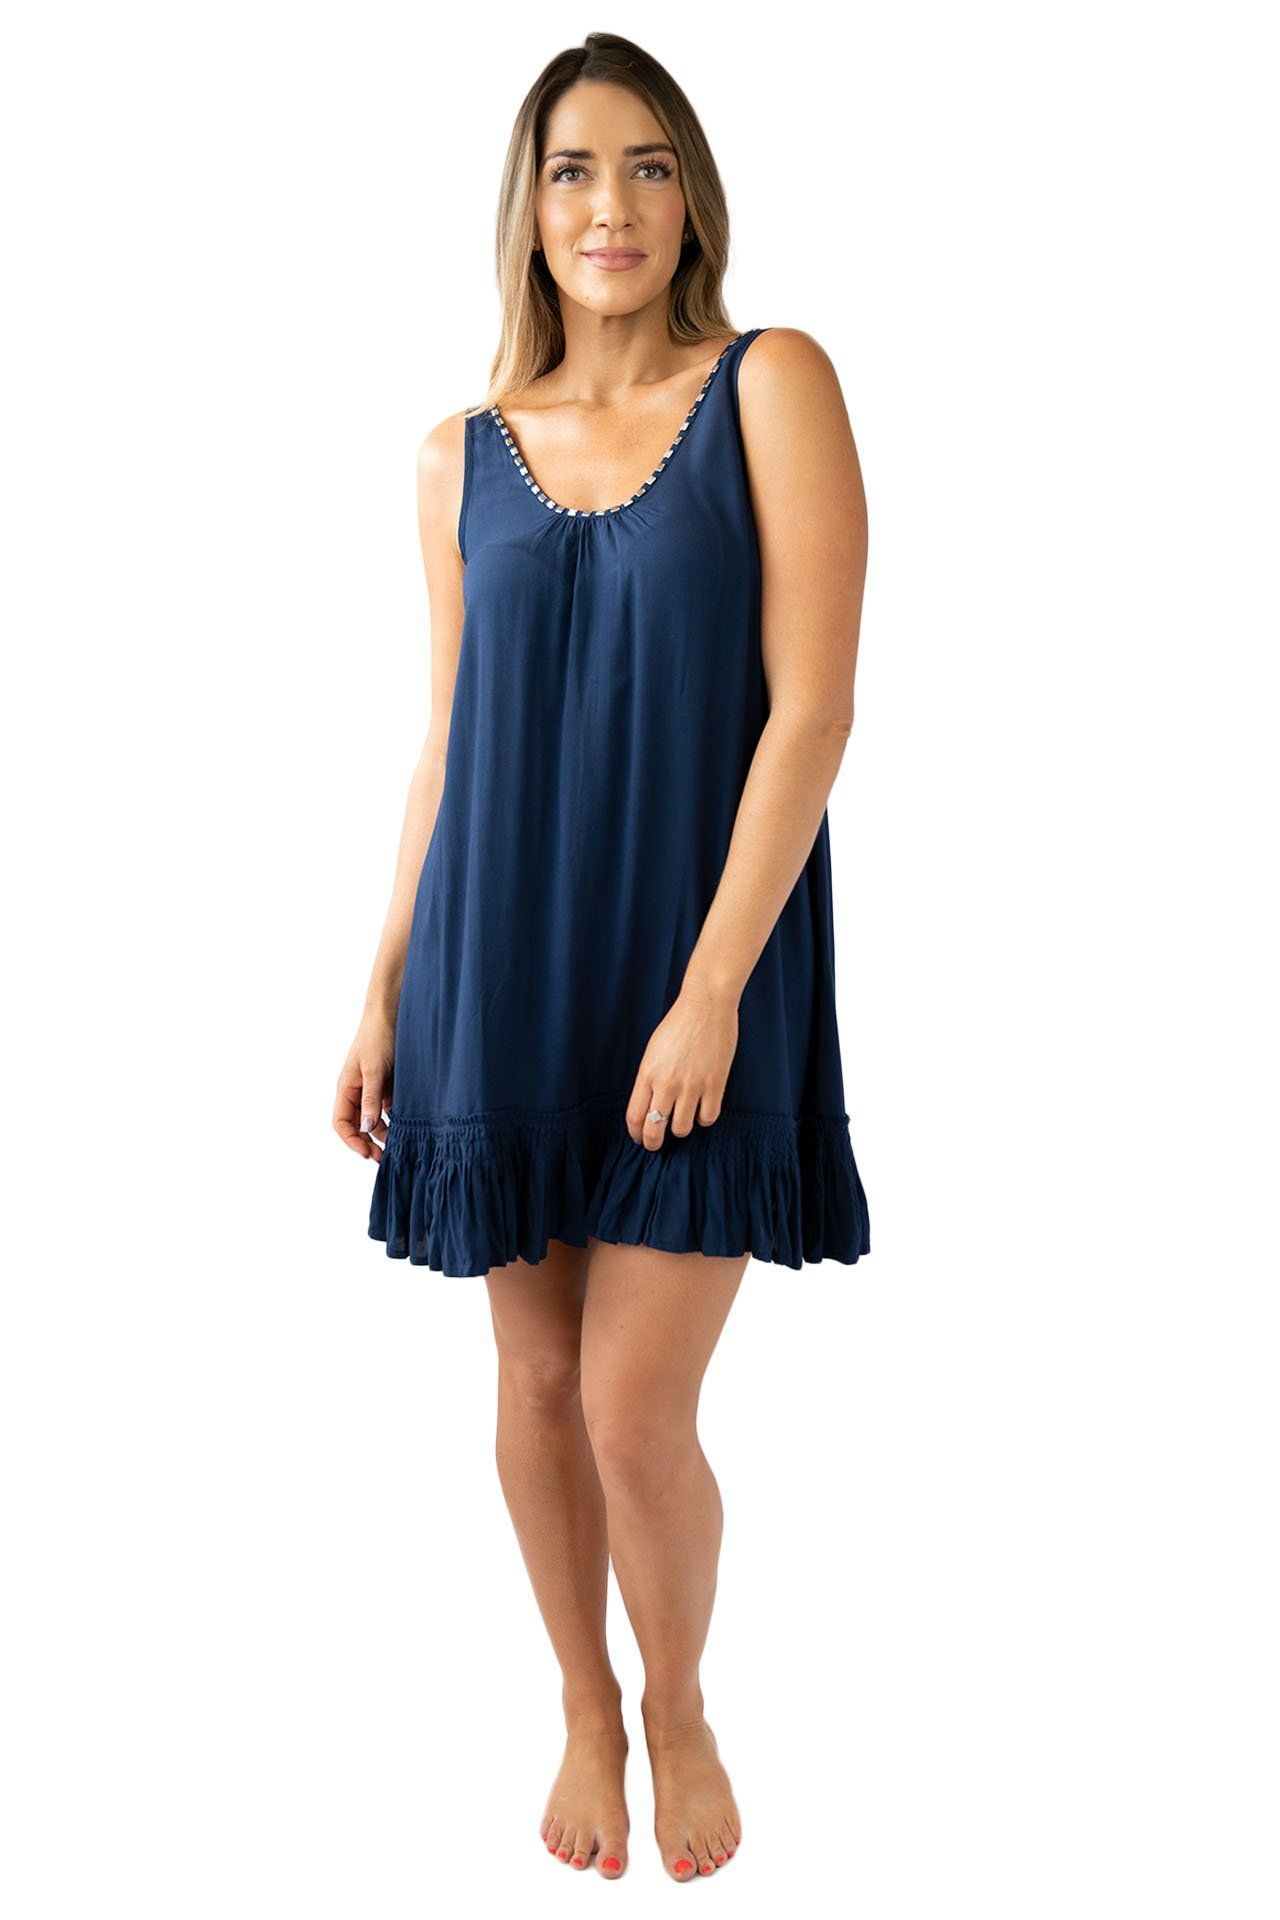 Bella Beach Dress OVERSWIM LOVE LILY S/M Navy